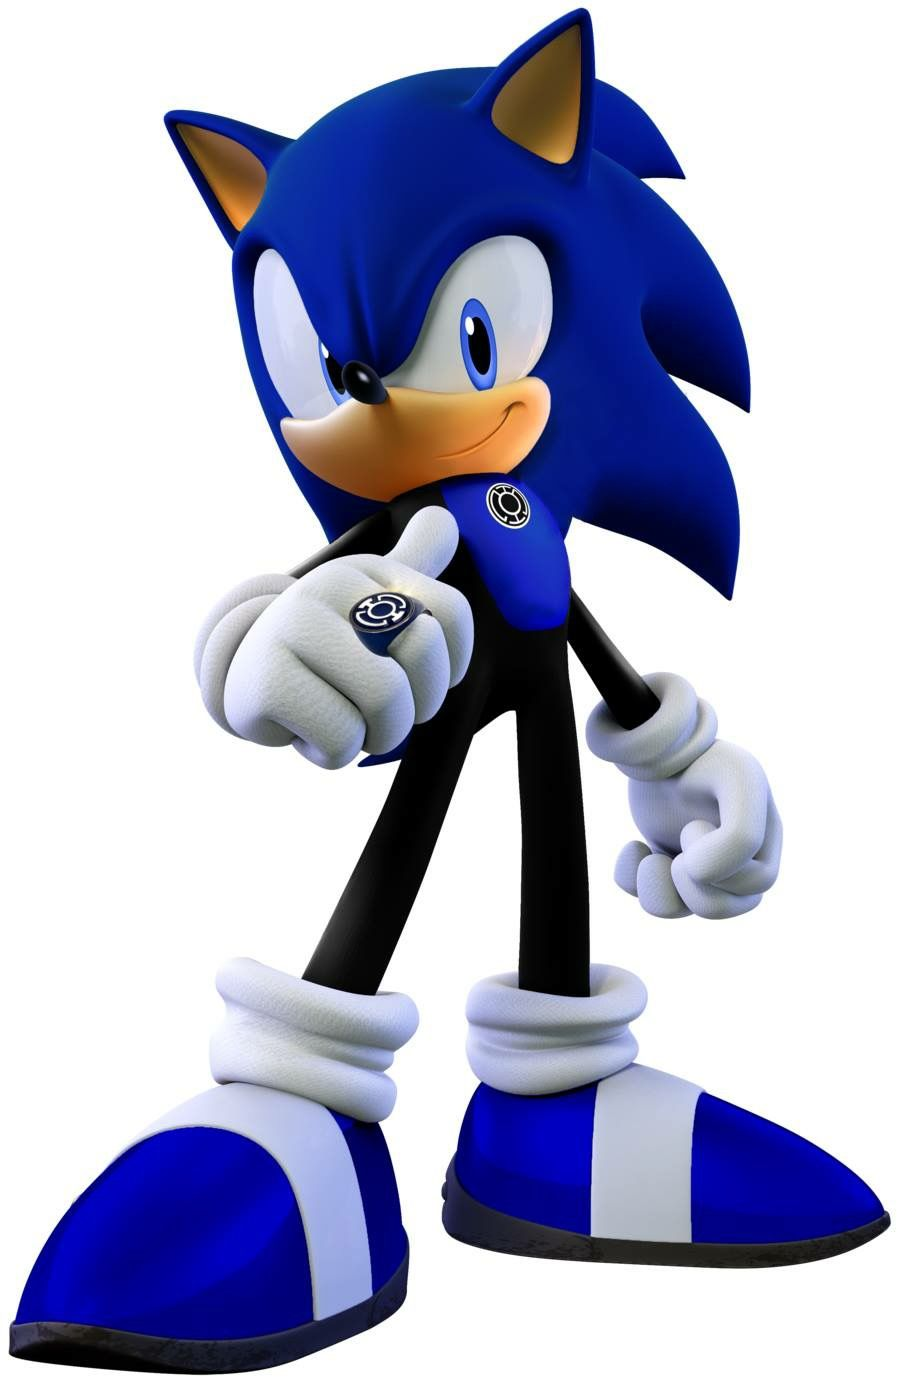 Var Mobile Containers Data Application 6bf22402 5a0c 46a5 8b7a 395d647fa417 Documents 111165502077118482889 0b2lsfelz7 Sonic Sonic Unleashed Sonic Generations